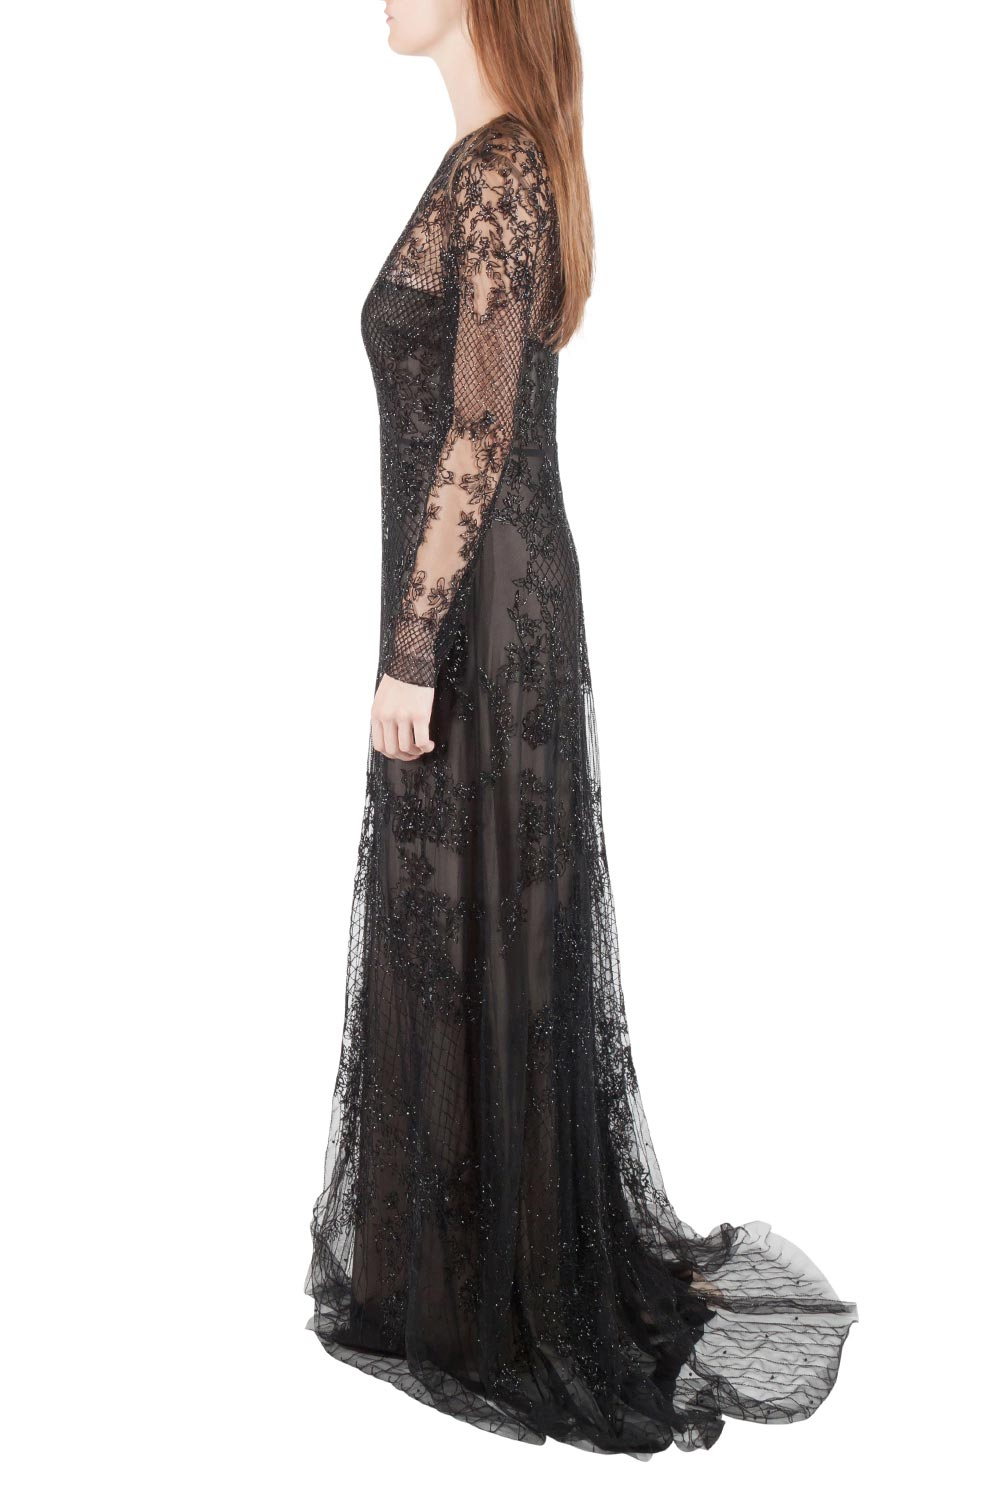 Monique Lhuillier Noir Black Embellished Long Sleeve Evening Gown